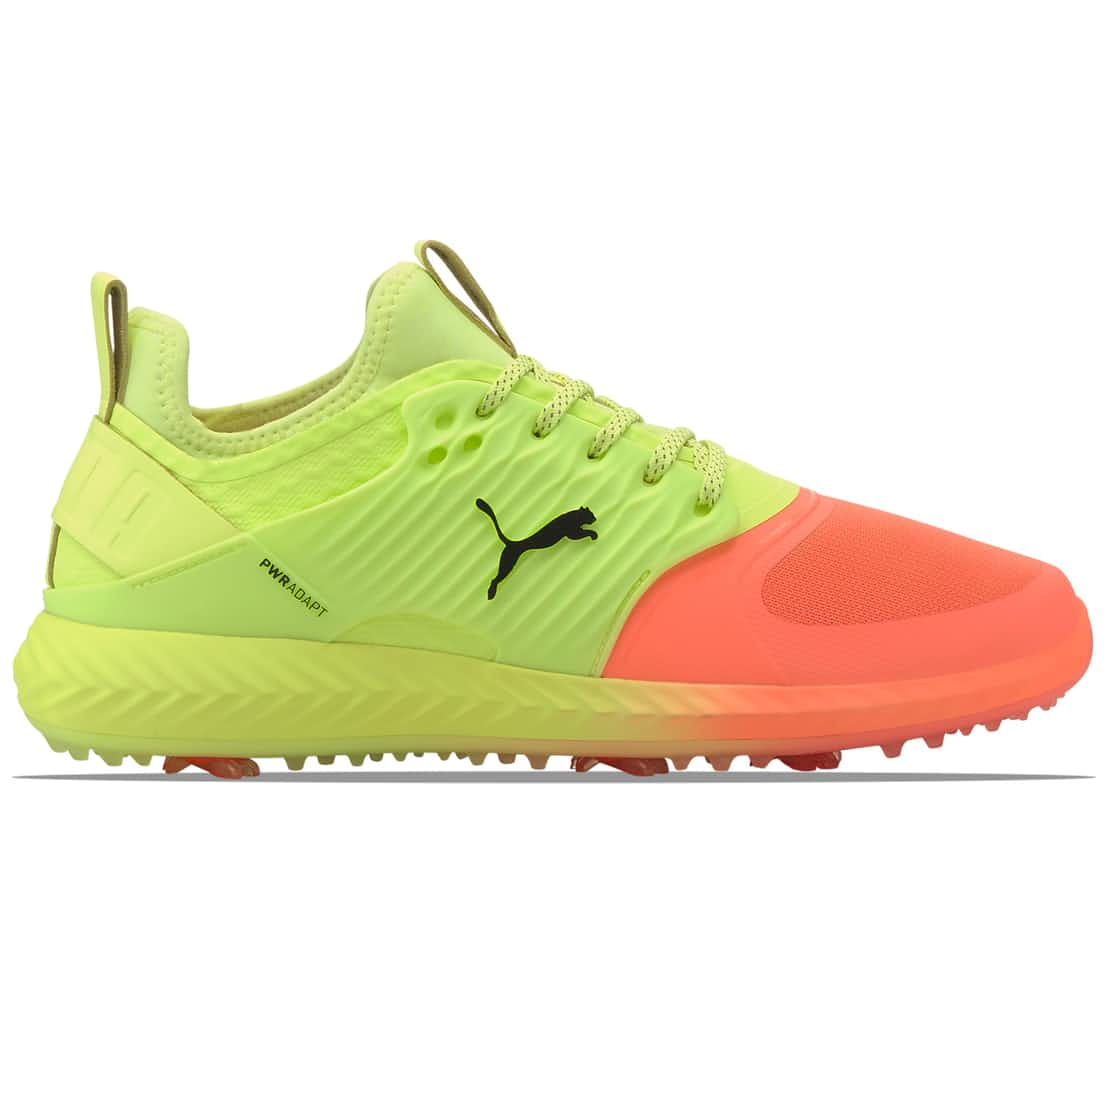 Ignite PWRADAPT Caged Rise Up Nrgy Peach/Fizzy Yellow/Black - AW20